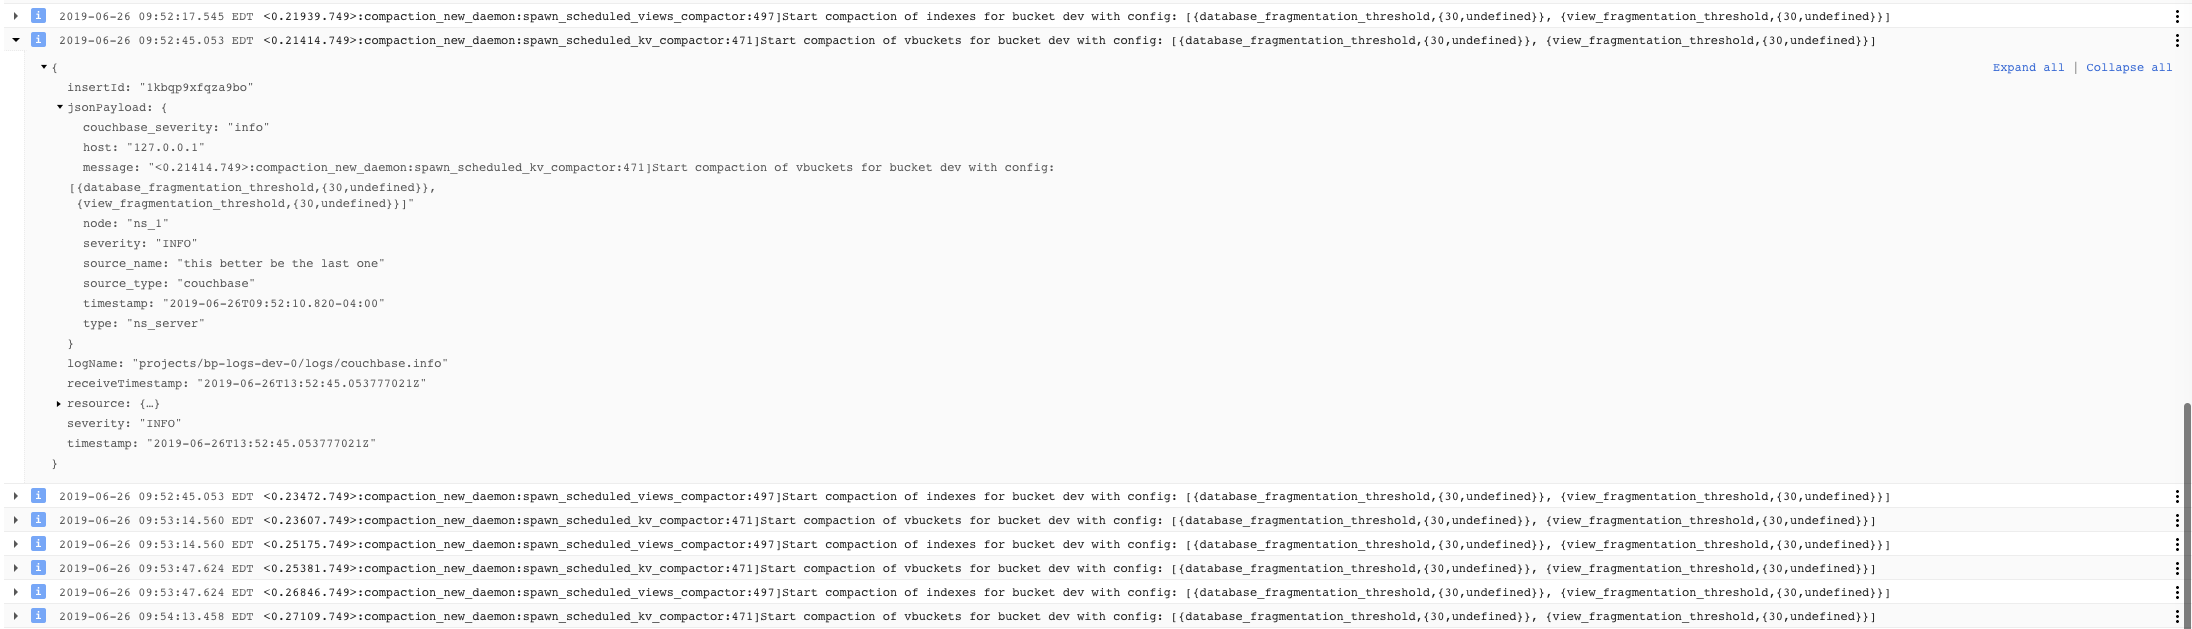 Couchbase Information Logs Example